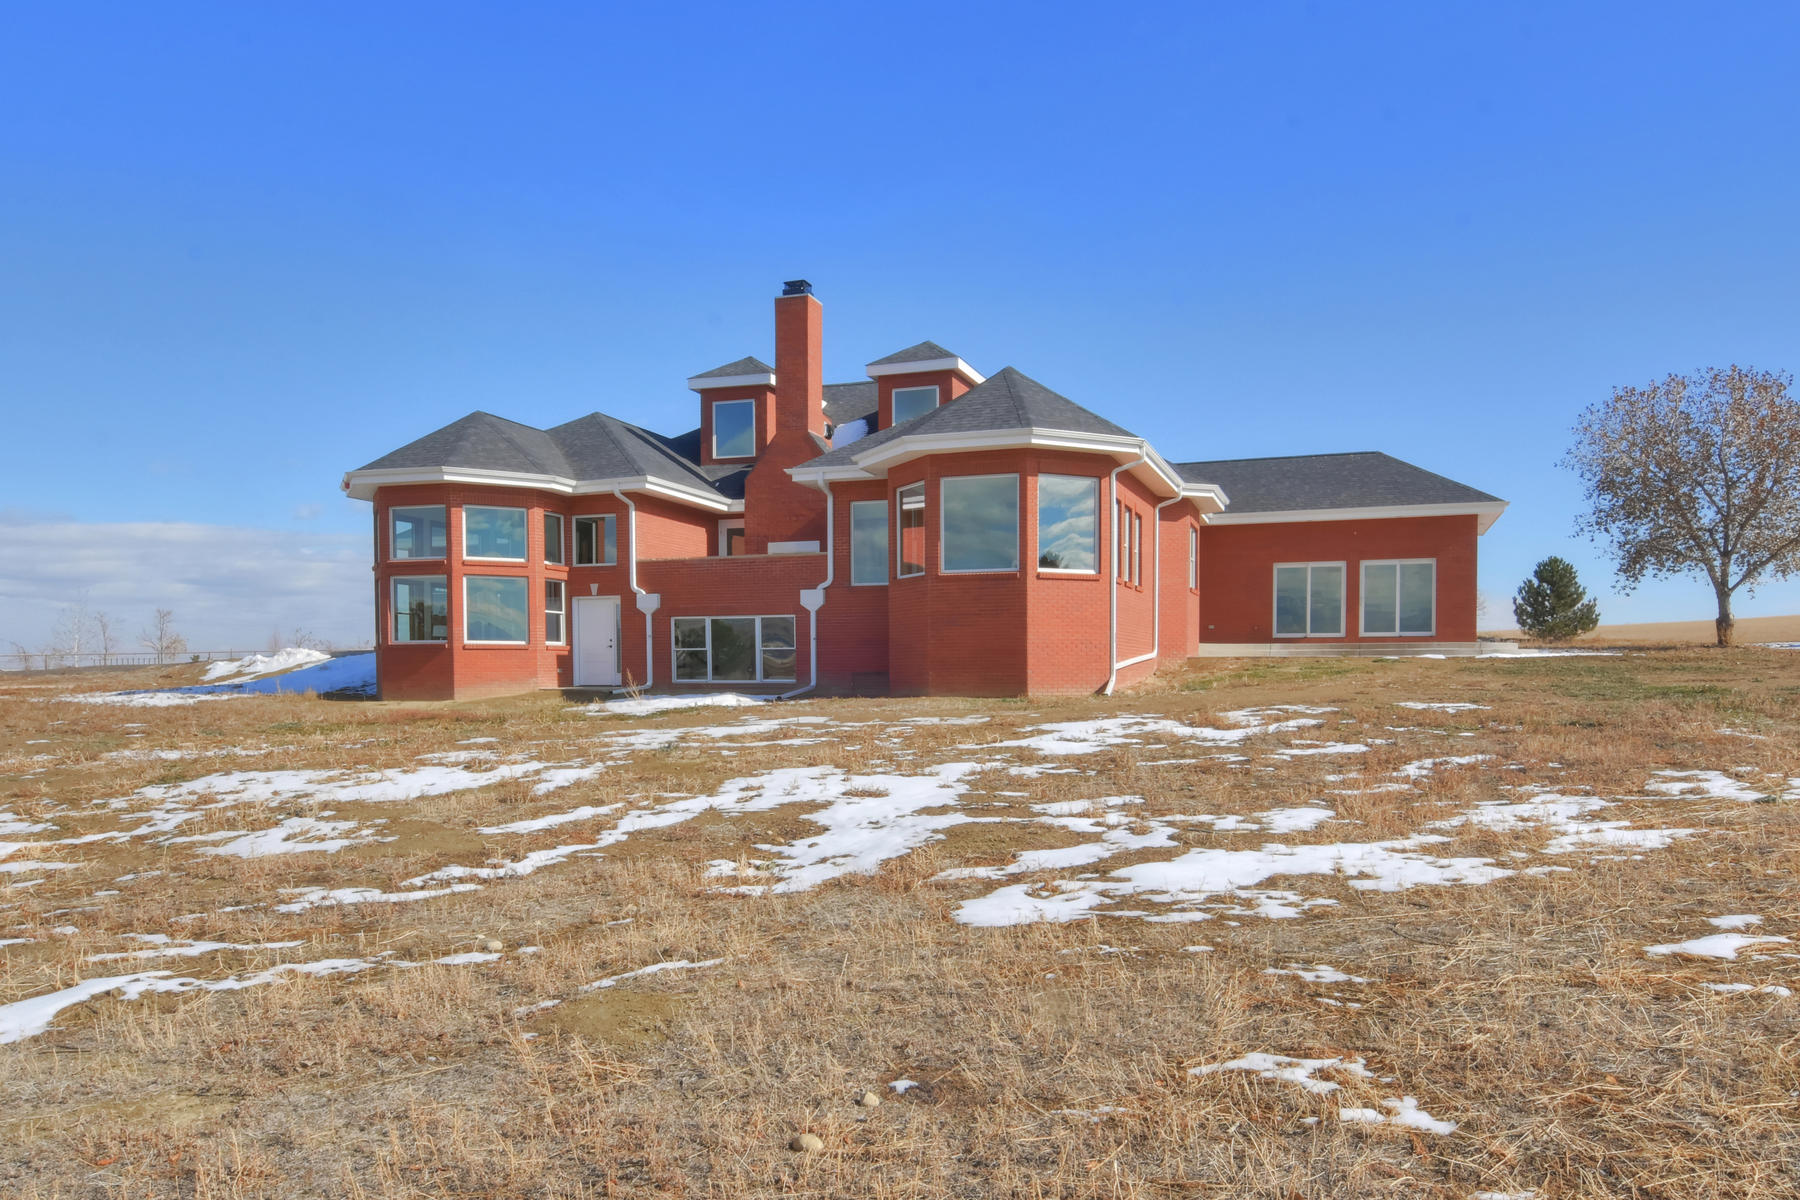 Single Family Homes for Sale at Red Brick Castle 6082 N 79th St Niwot, Colorado 80503 United States